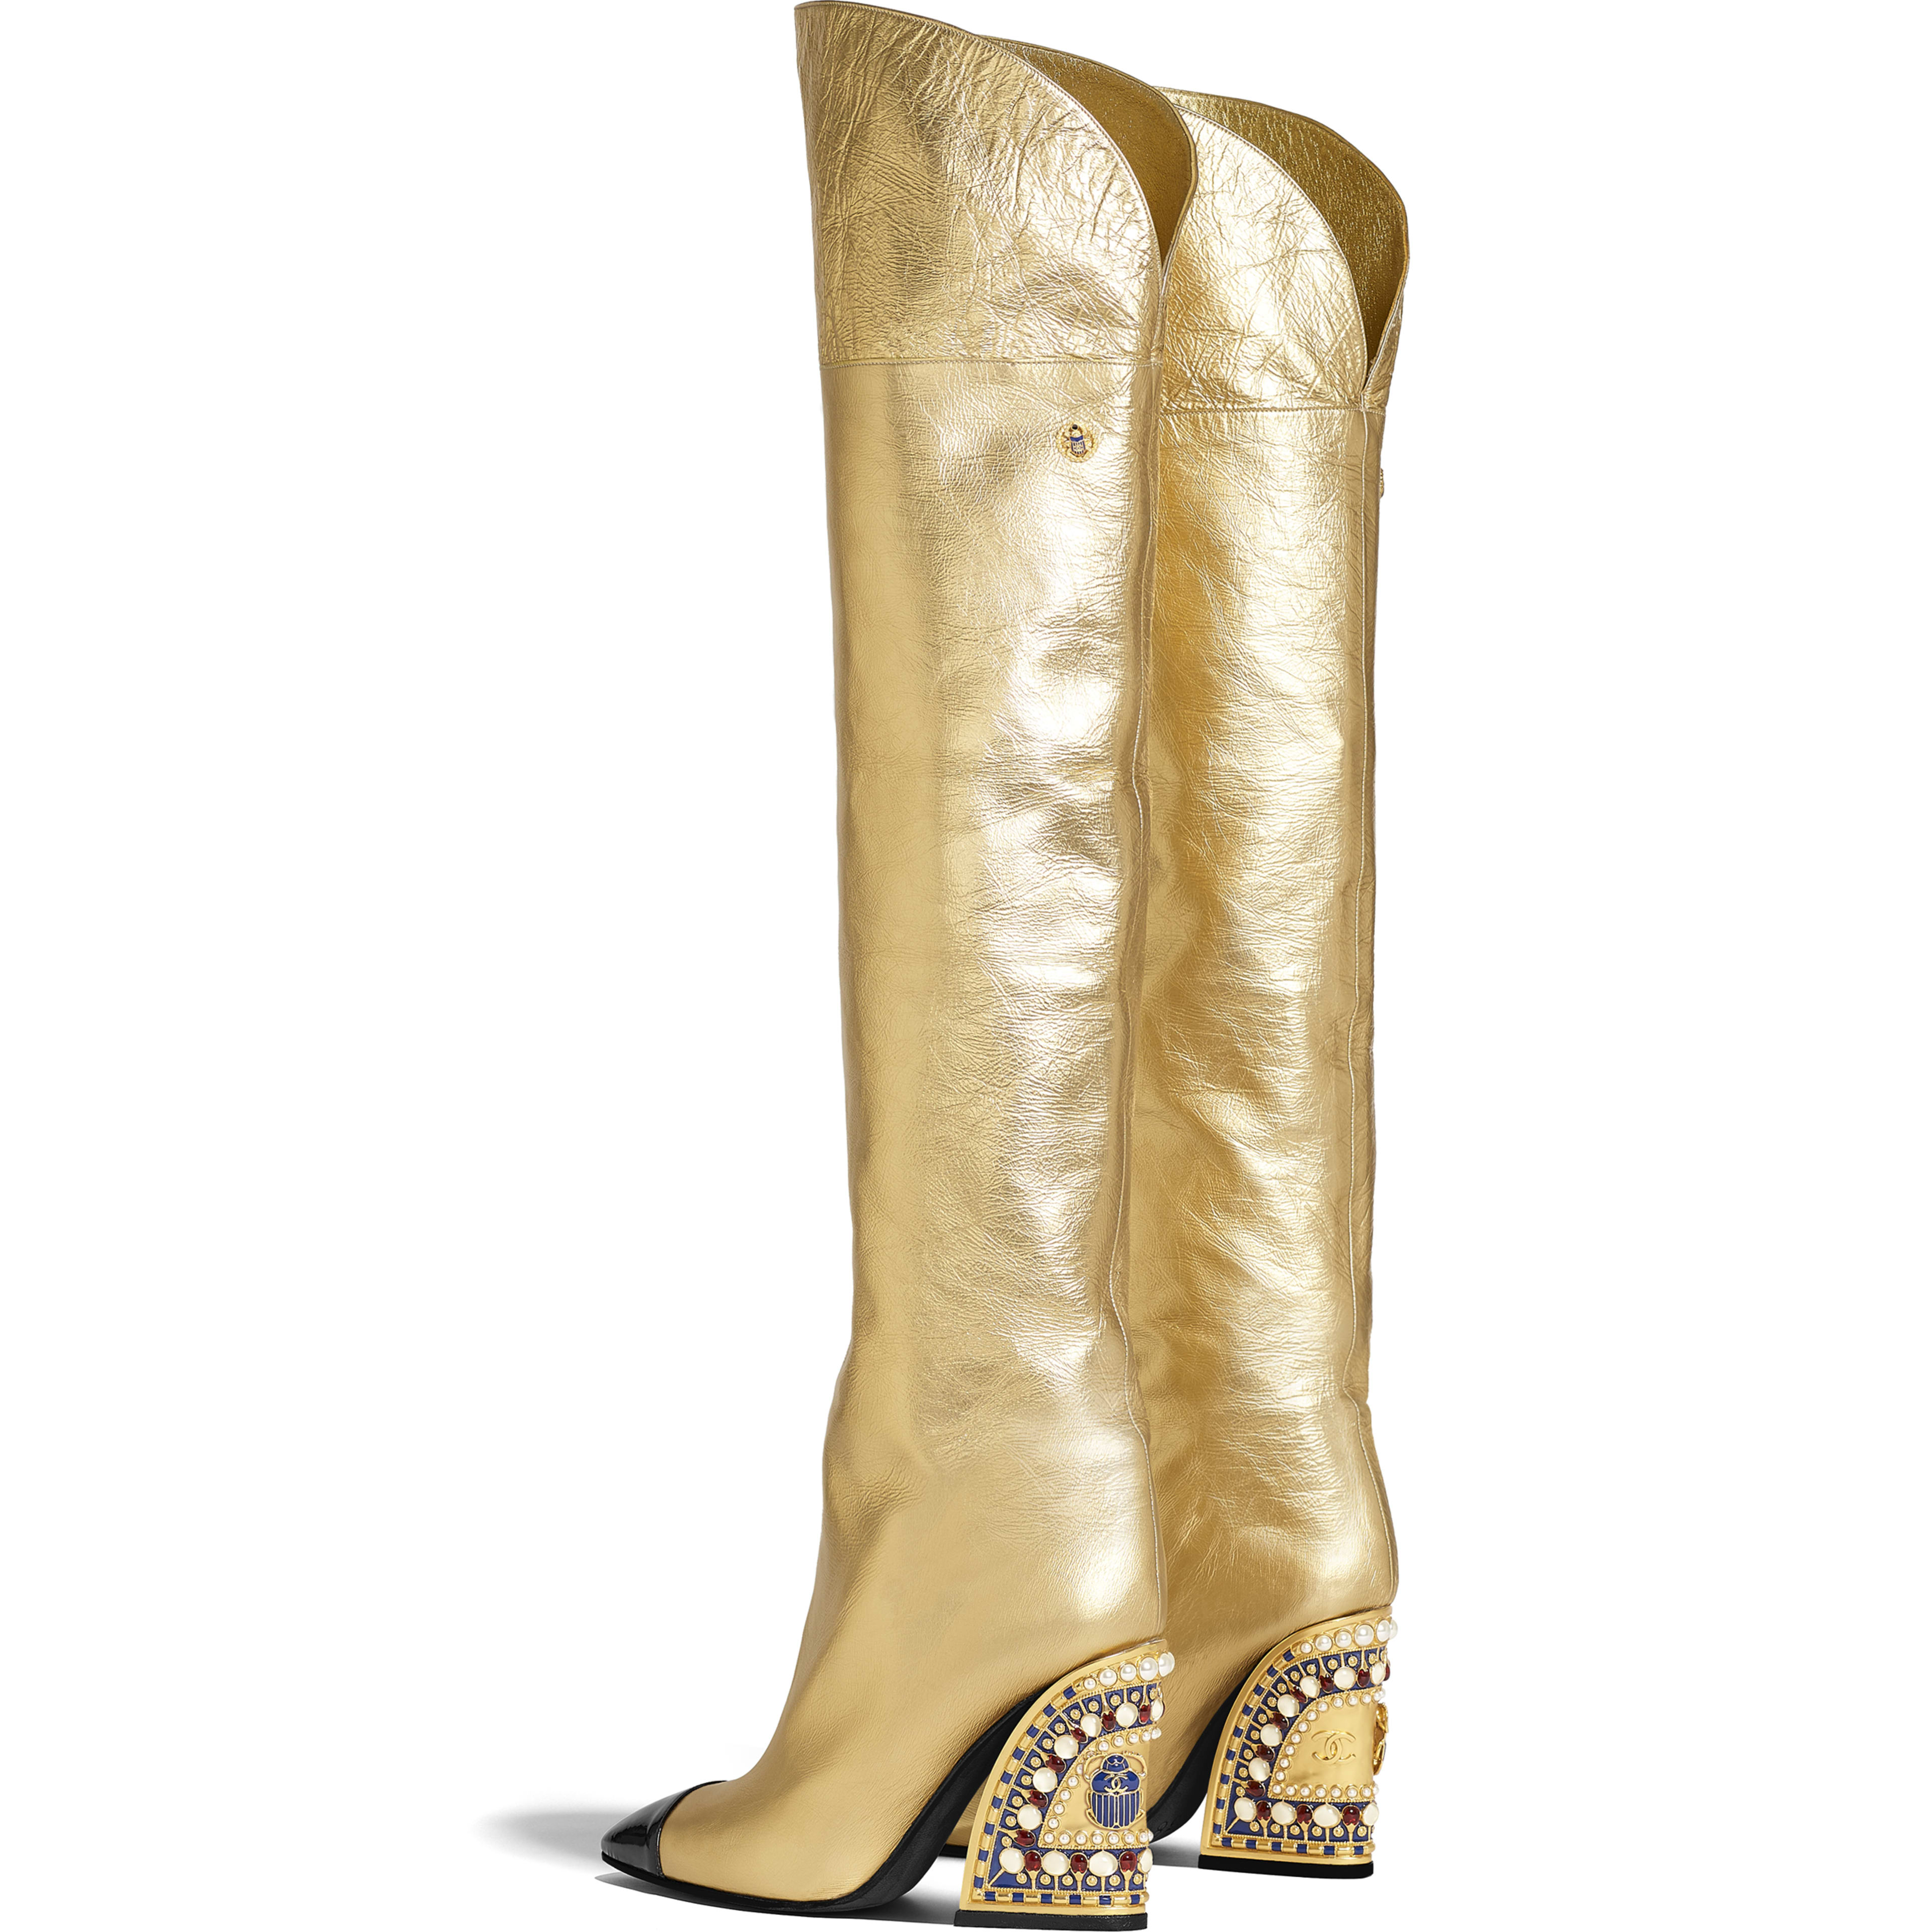 High Boots - Gold & Black - Laminated Lambskin & Patent Calfskin - Other view - see full sized version